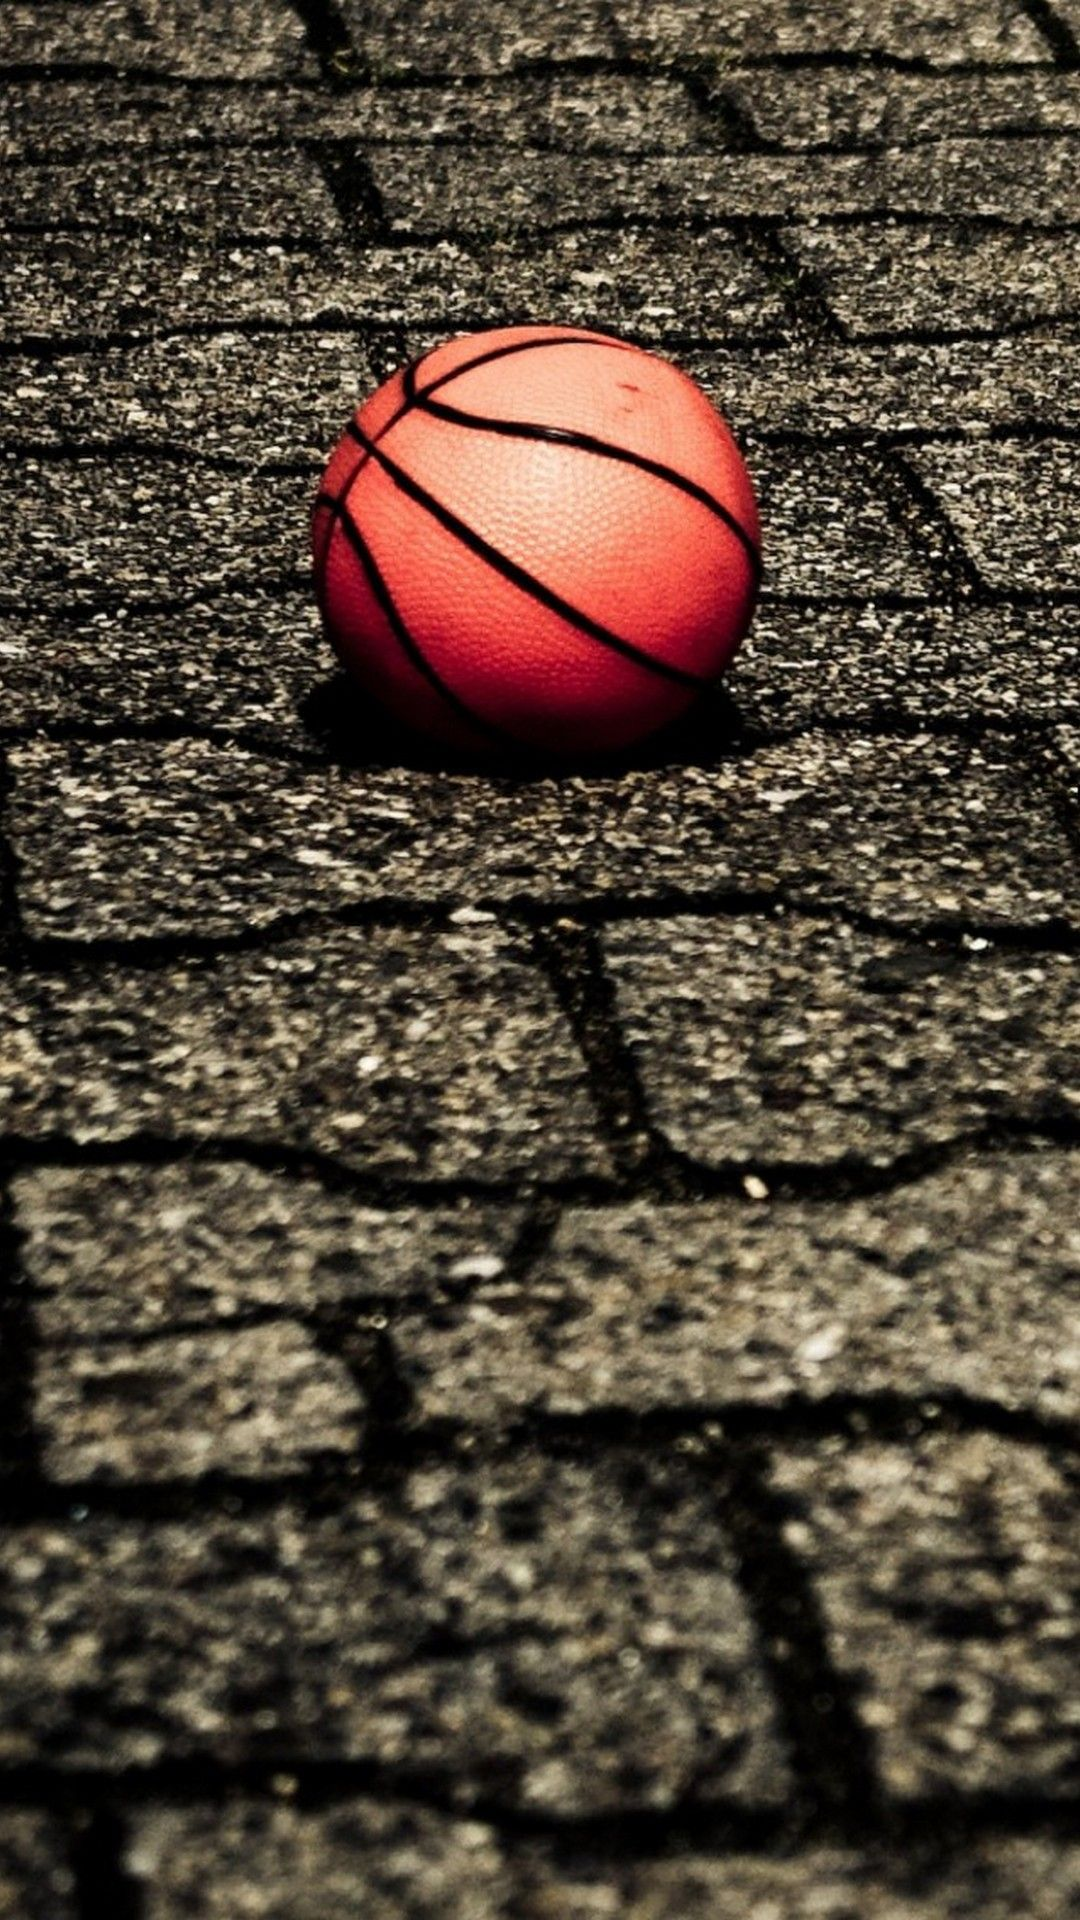 Basketball Wallpaper Iphone Hd 2020 Basketball Wallpaper Basketball Iphone Wallpaper Basketball Wallpapers Hd Basketball Wallpaper